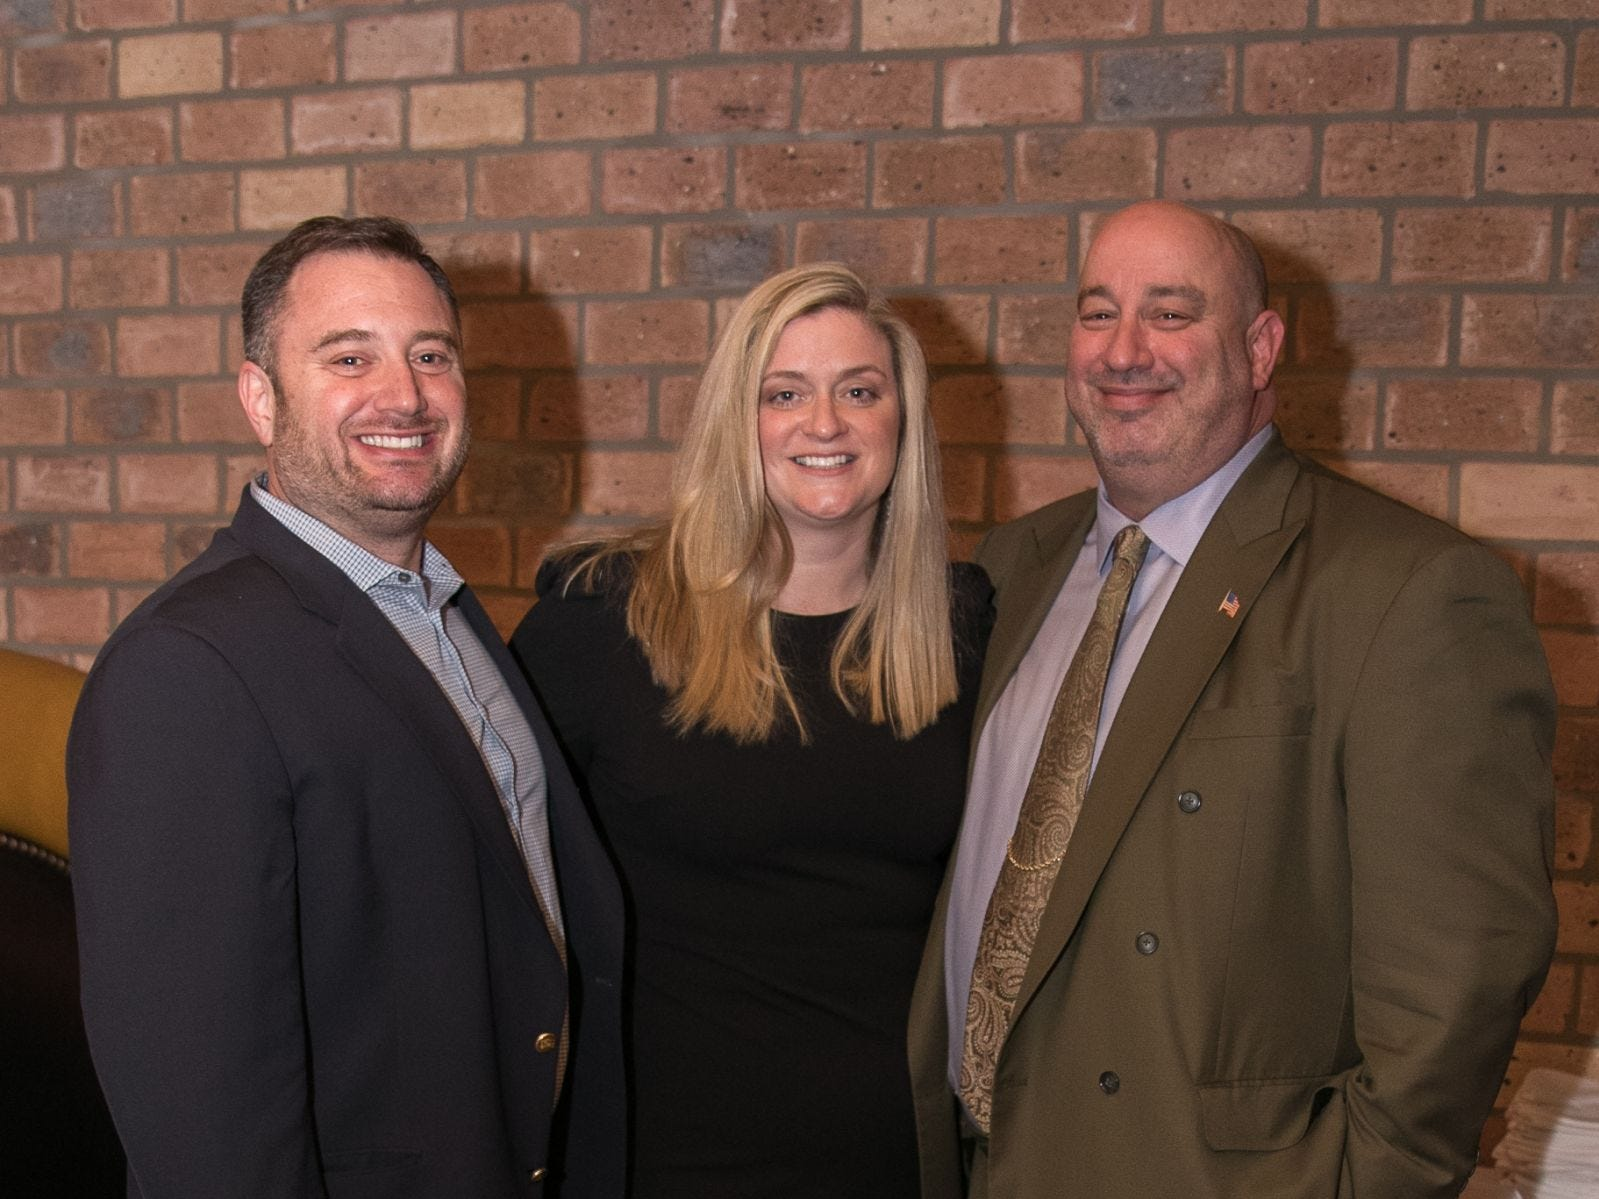 Scott Orr, Christina Gibbons, Eric Abramson. Christina Gibbons of Special Properties held a cocktail reception to acknowledge her clients at Roots Steakhouse in Ridgewood. 02/07/2019